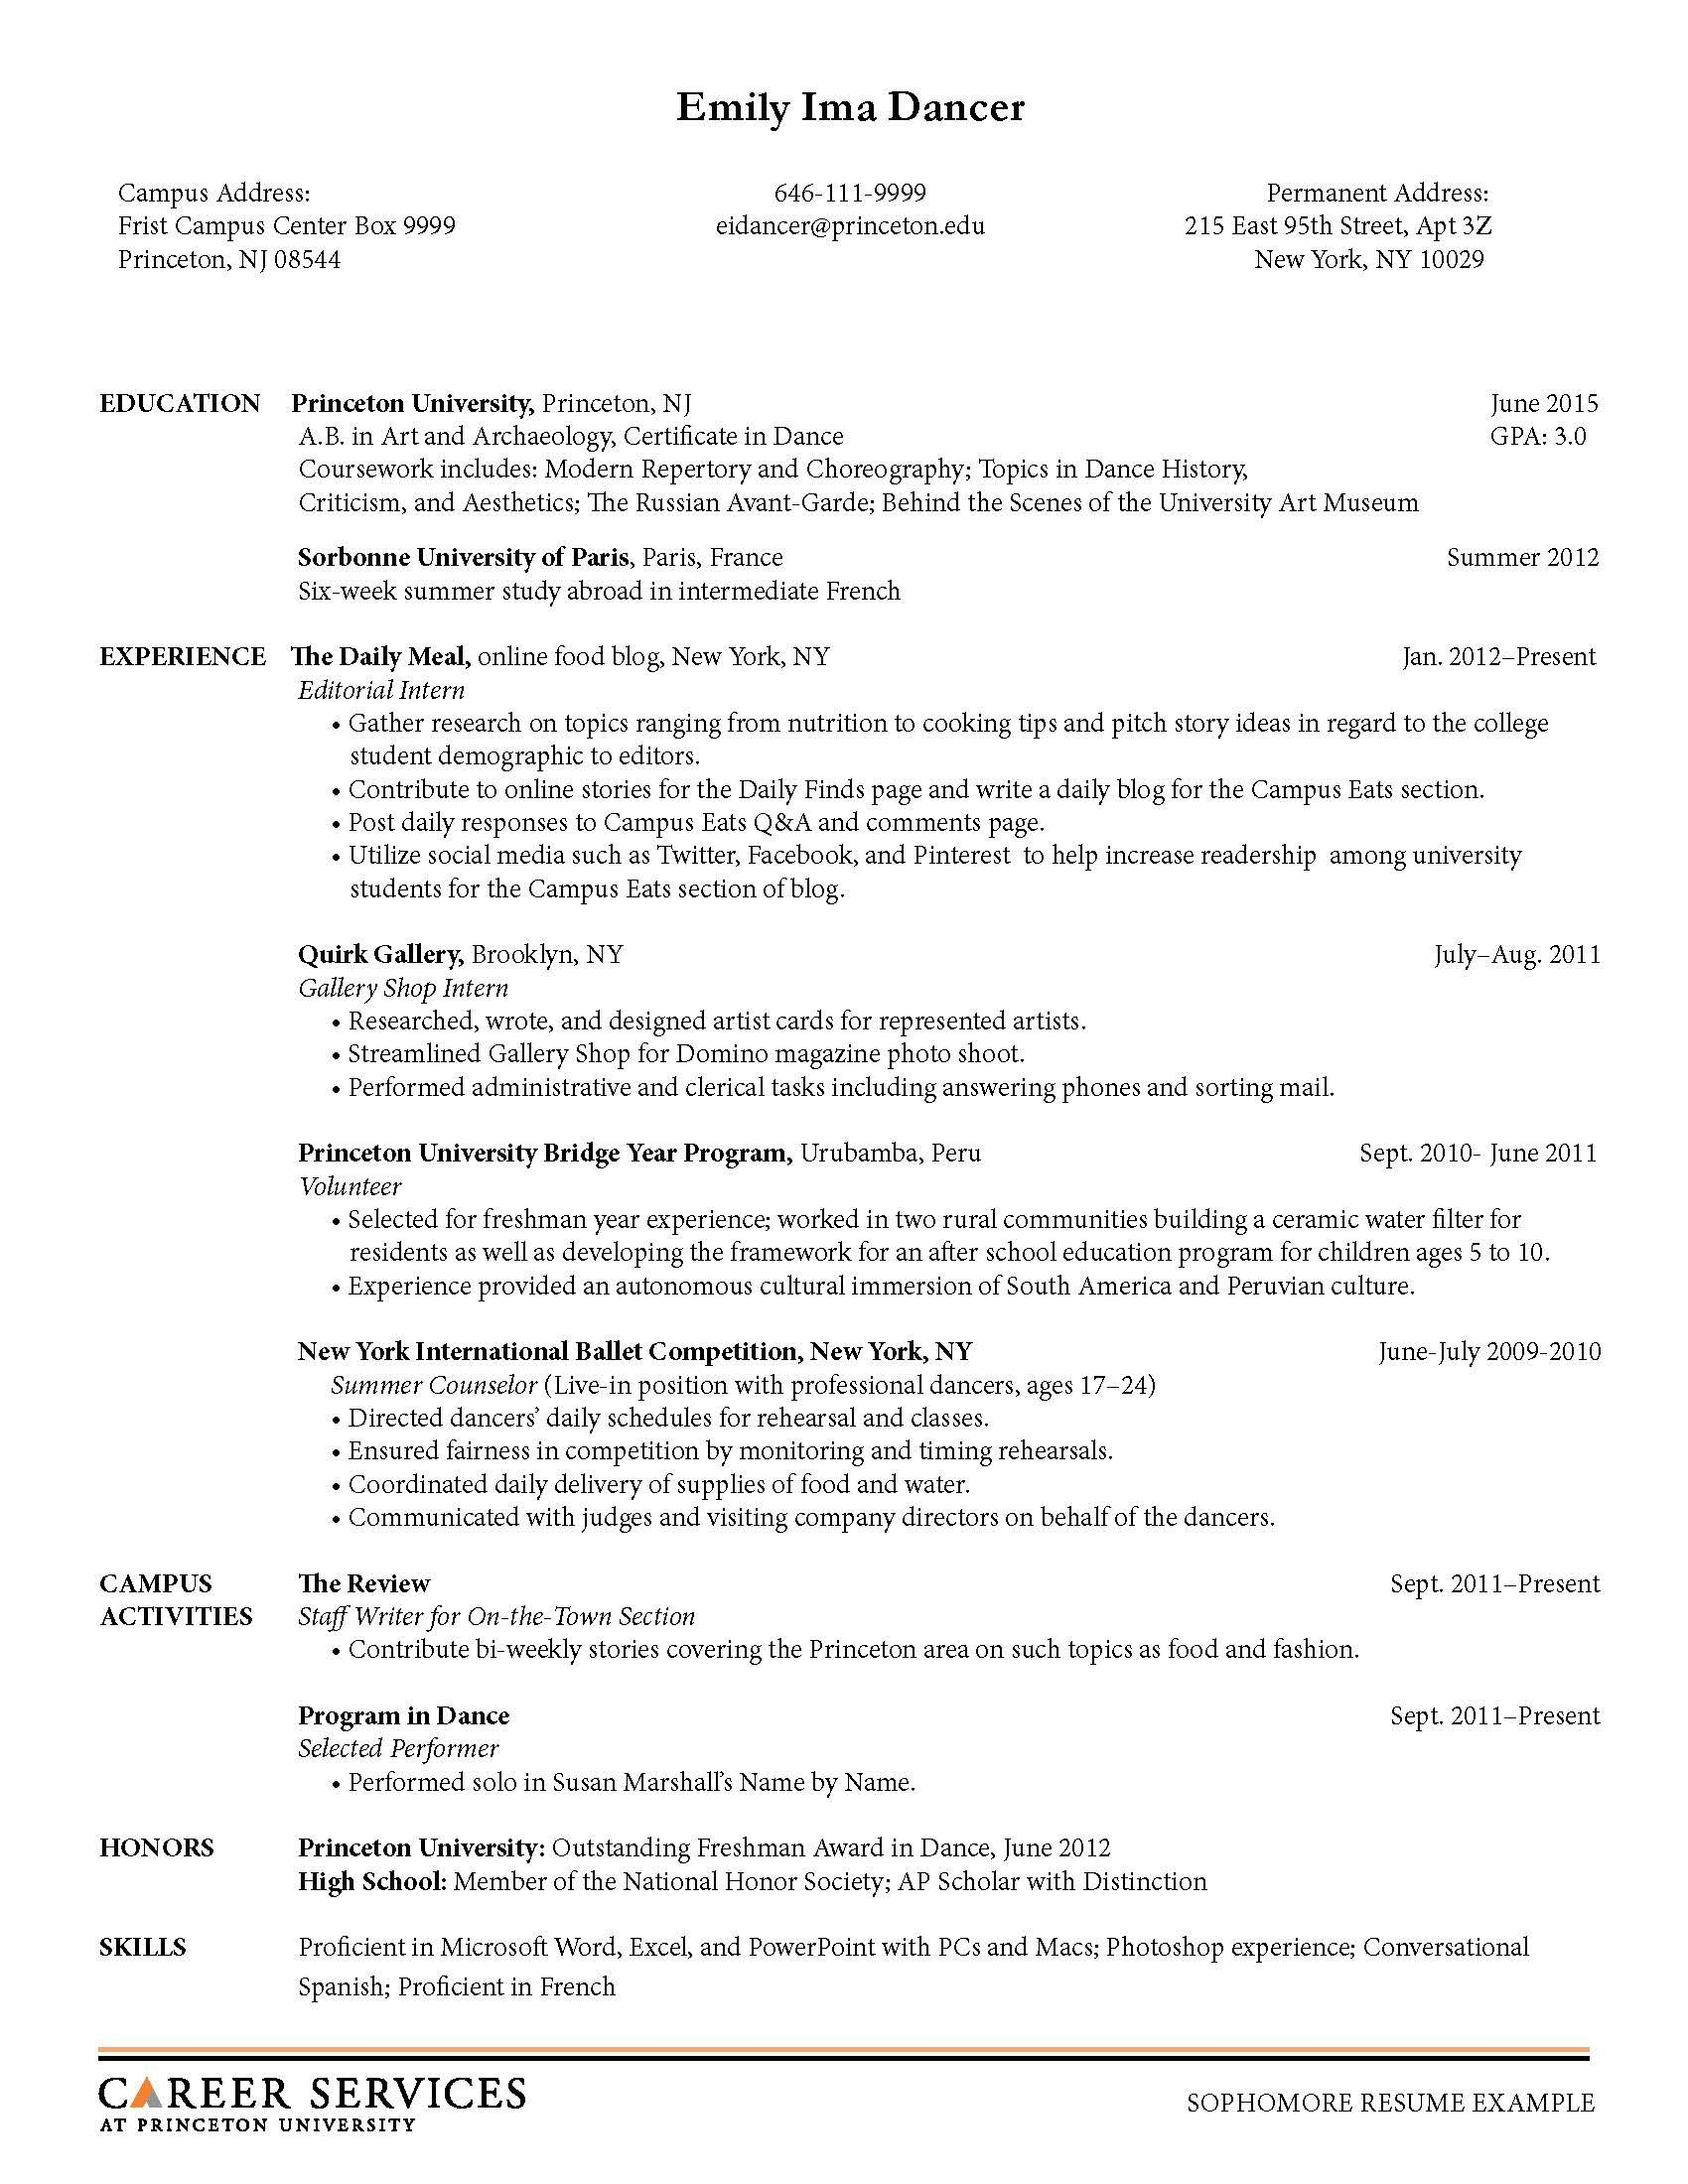 Picnictoimpeachus  Scenic Sample Resume Resume And Career On Pinterest With Goodlooking Online Resume Examples Besides Resume For Restaurant Server Furthermore Sample Resume For Medical Assistant With Endearing Warehouse Resume Examples Also Livecareer My Perfect Resume In Addition Resume For Nursing Student And Job Resume Outline As Well As Human Resource Manager Resume Additionally Resume For Food Service From Pinterestcom With Picnictoimpeachus  Goodlooking Sample Resume Resume And Career On Pinterest With Endearing Online Resume Examples Besides Resume For Restaurant Server Furthermore Sample Resume For Medical Assistant And Scenic Warehouse Resume Examples Also Livecareer My Perfect Resume In Addition Resume For Nursing Student From Pinterestcom